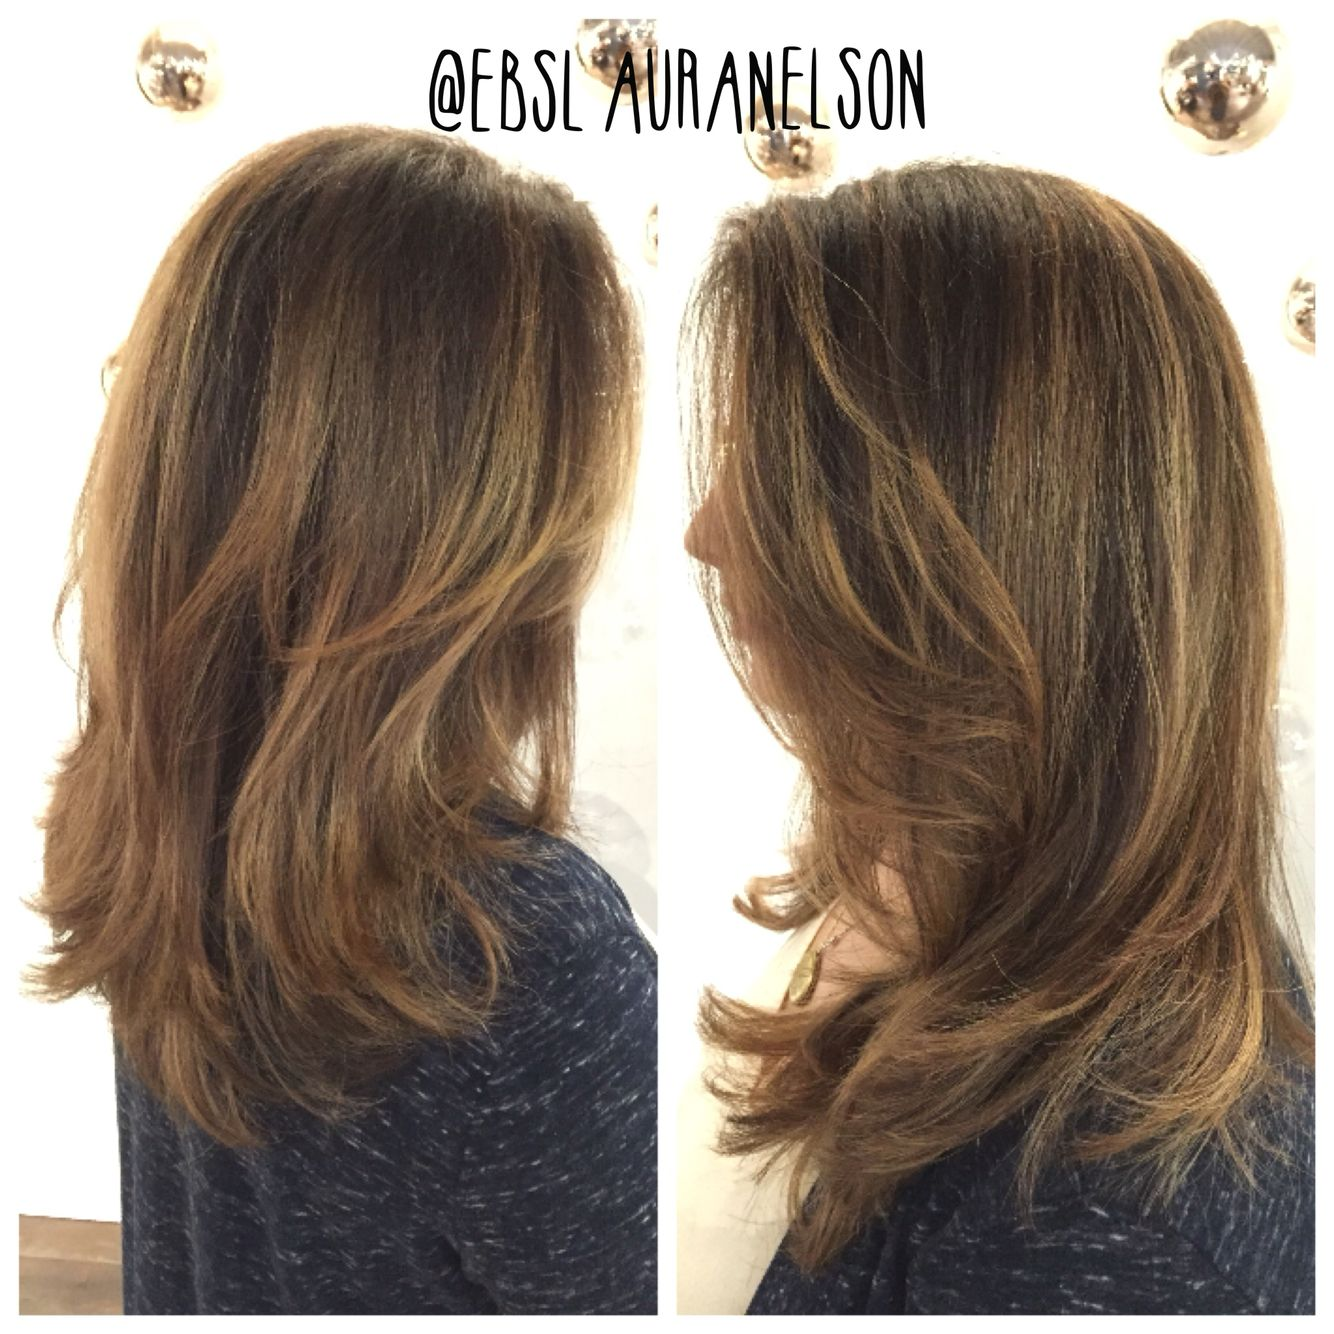 30 Best Hair Highlights For 2017 Every Style And Type Of